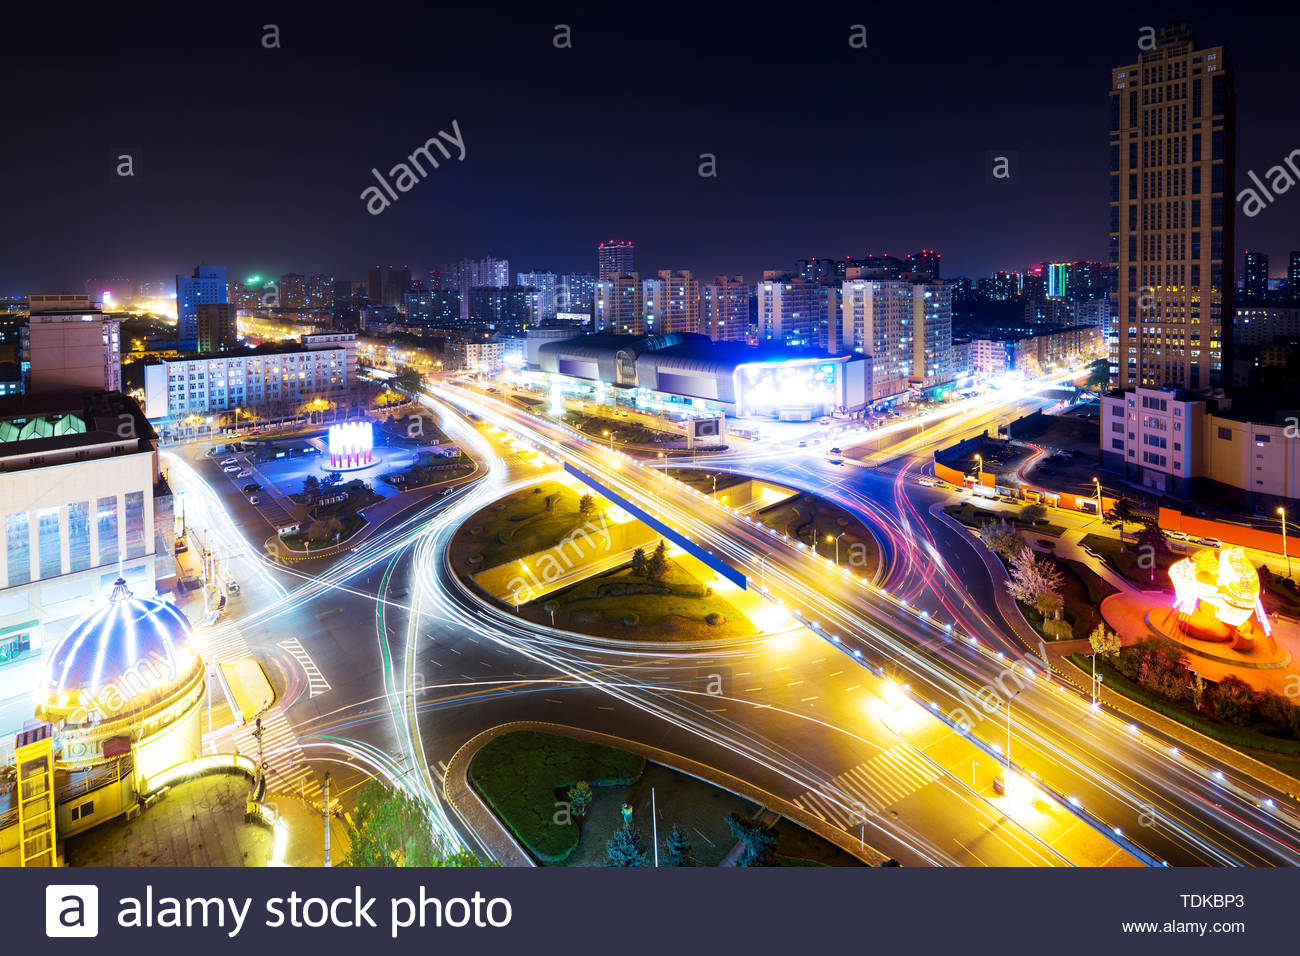 night scene of busy traffic on elevated road in midtown of modern city - Stock Image